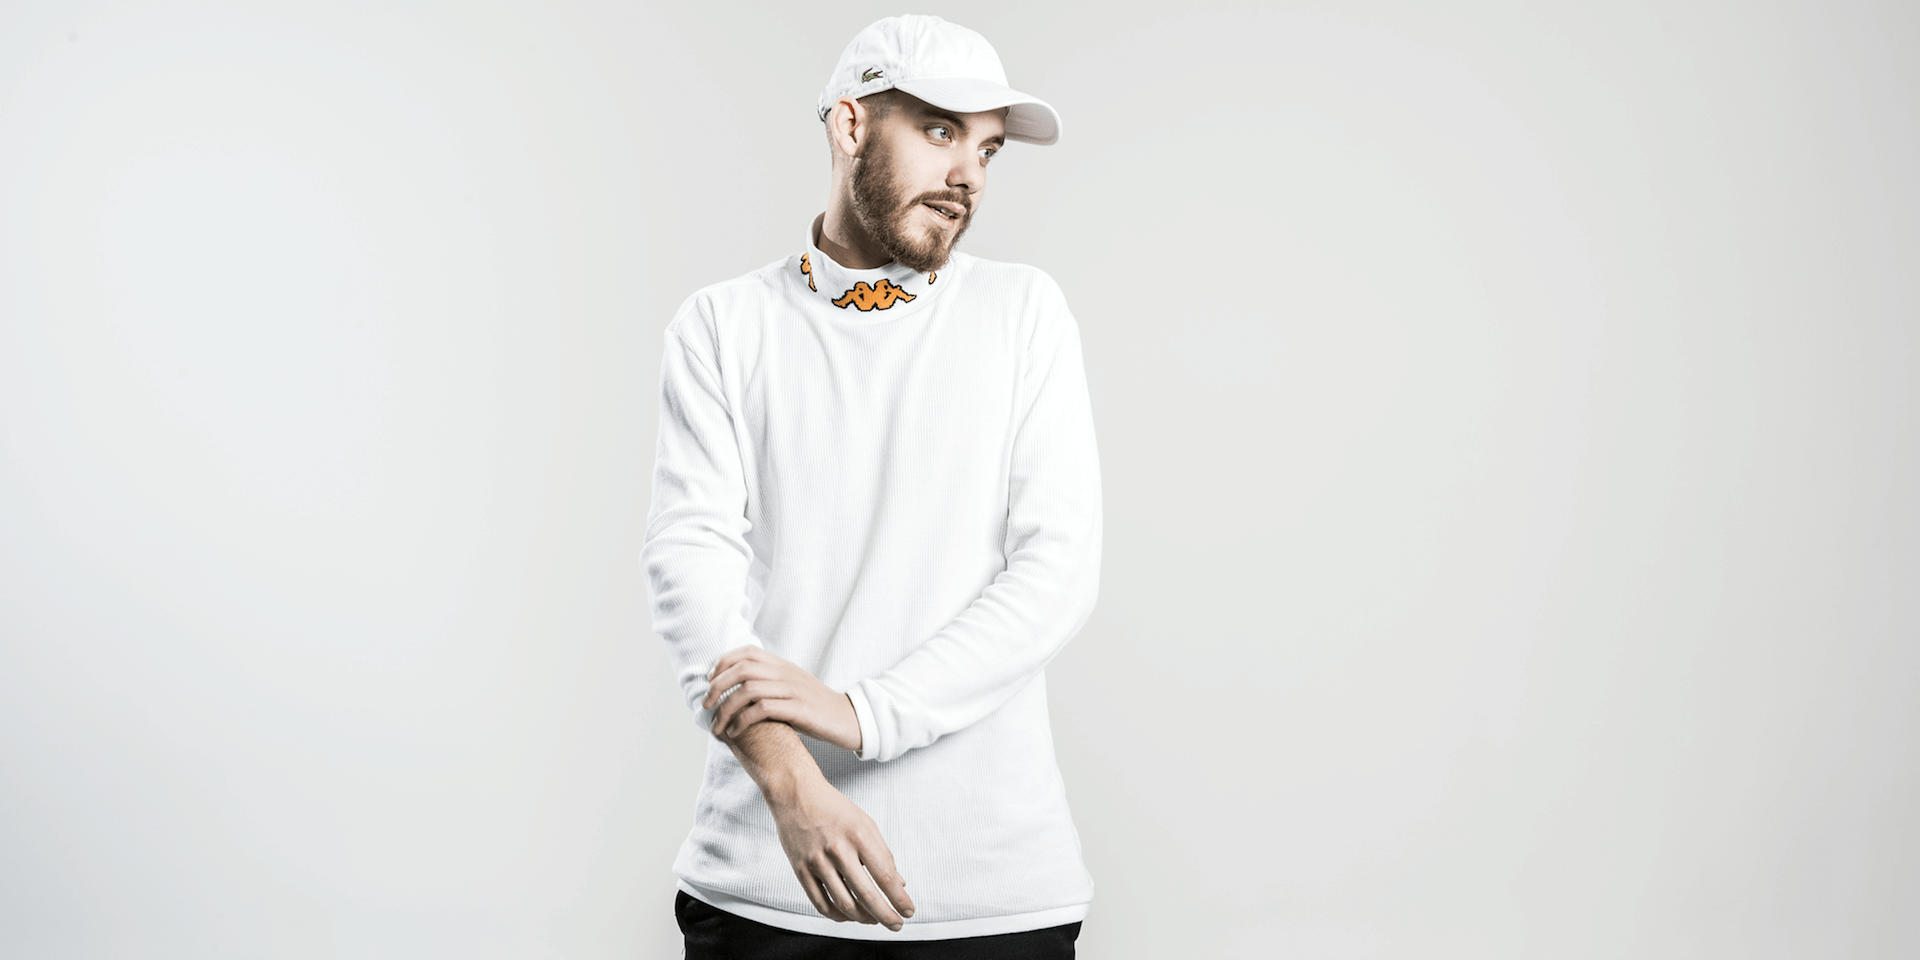 San Holo to perform in Singapore this July